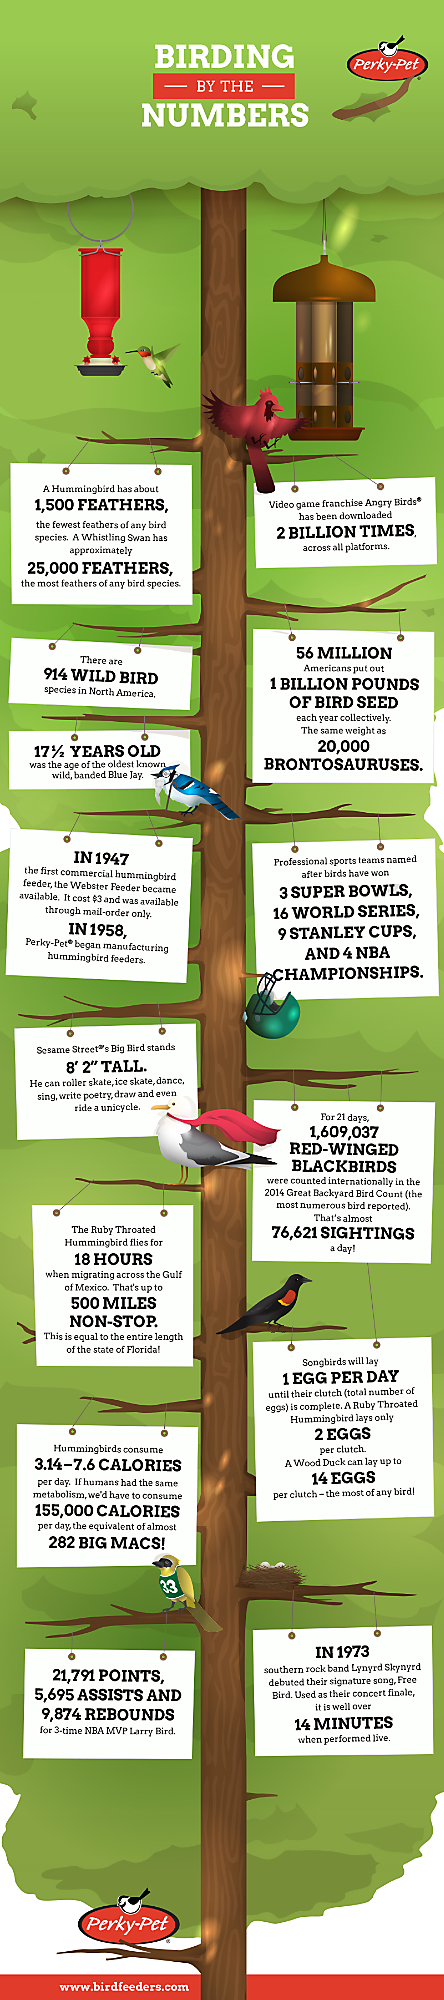 the Bird Feeding by the Numbers infographic shows a variety of bird facts